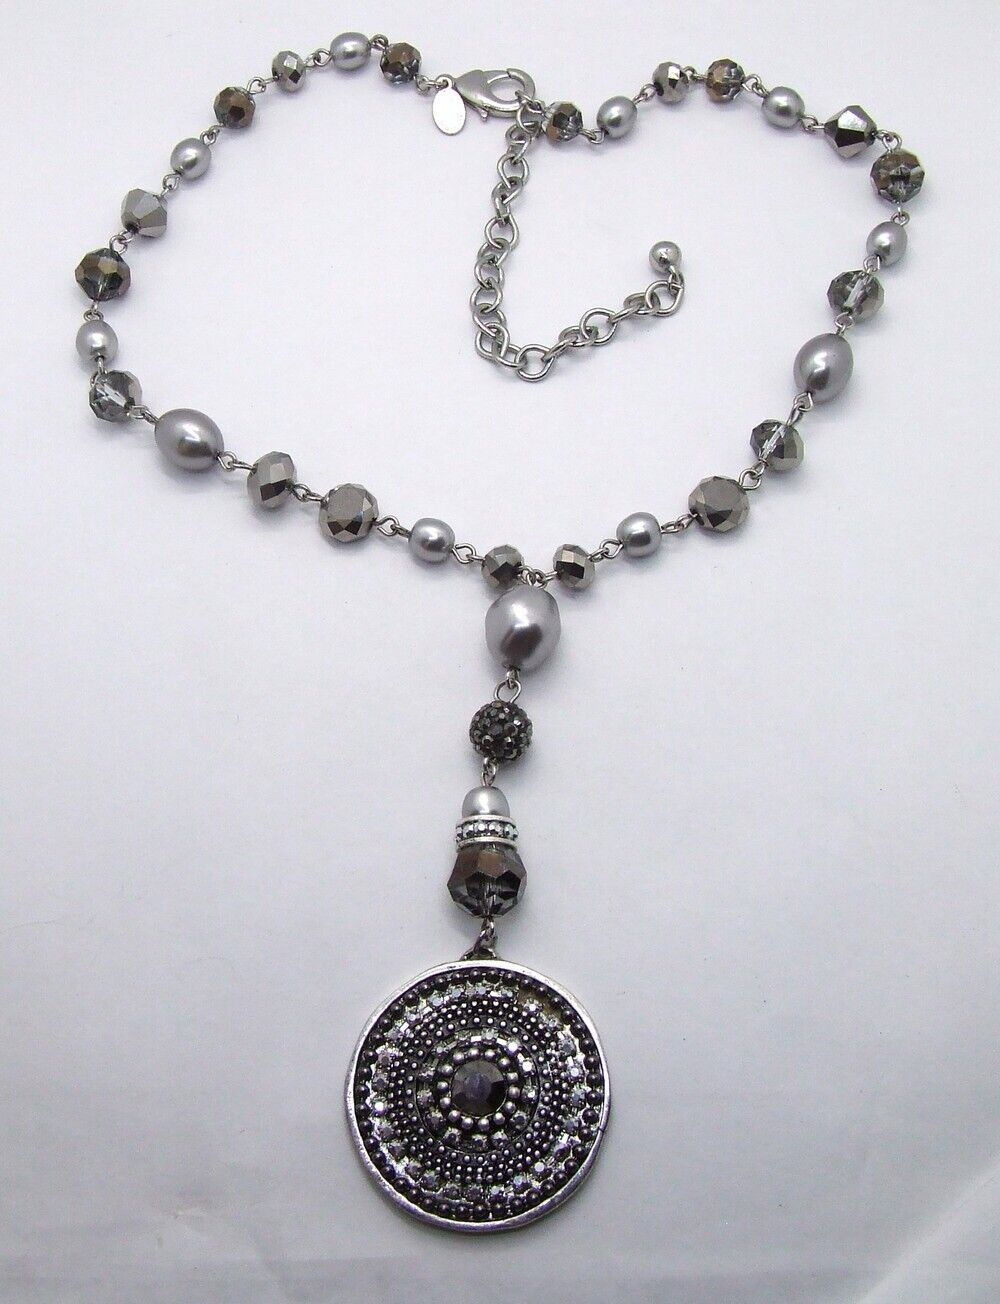 16 Chicos Smokey AB Crystal/Silver Faux Pearl Medallion Pendant Choker/Necklace - $11.99